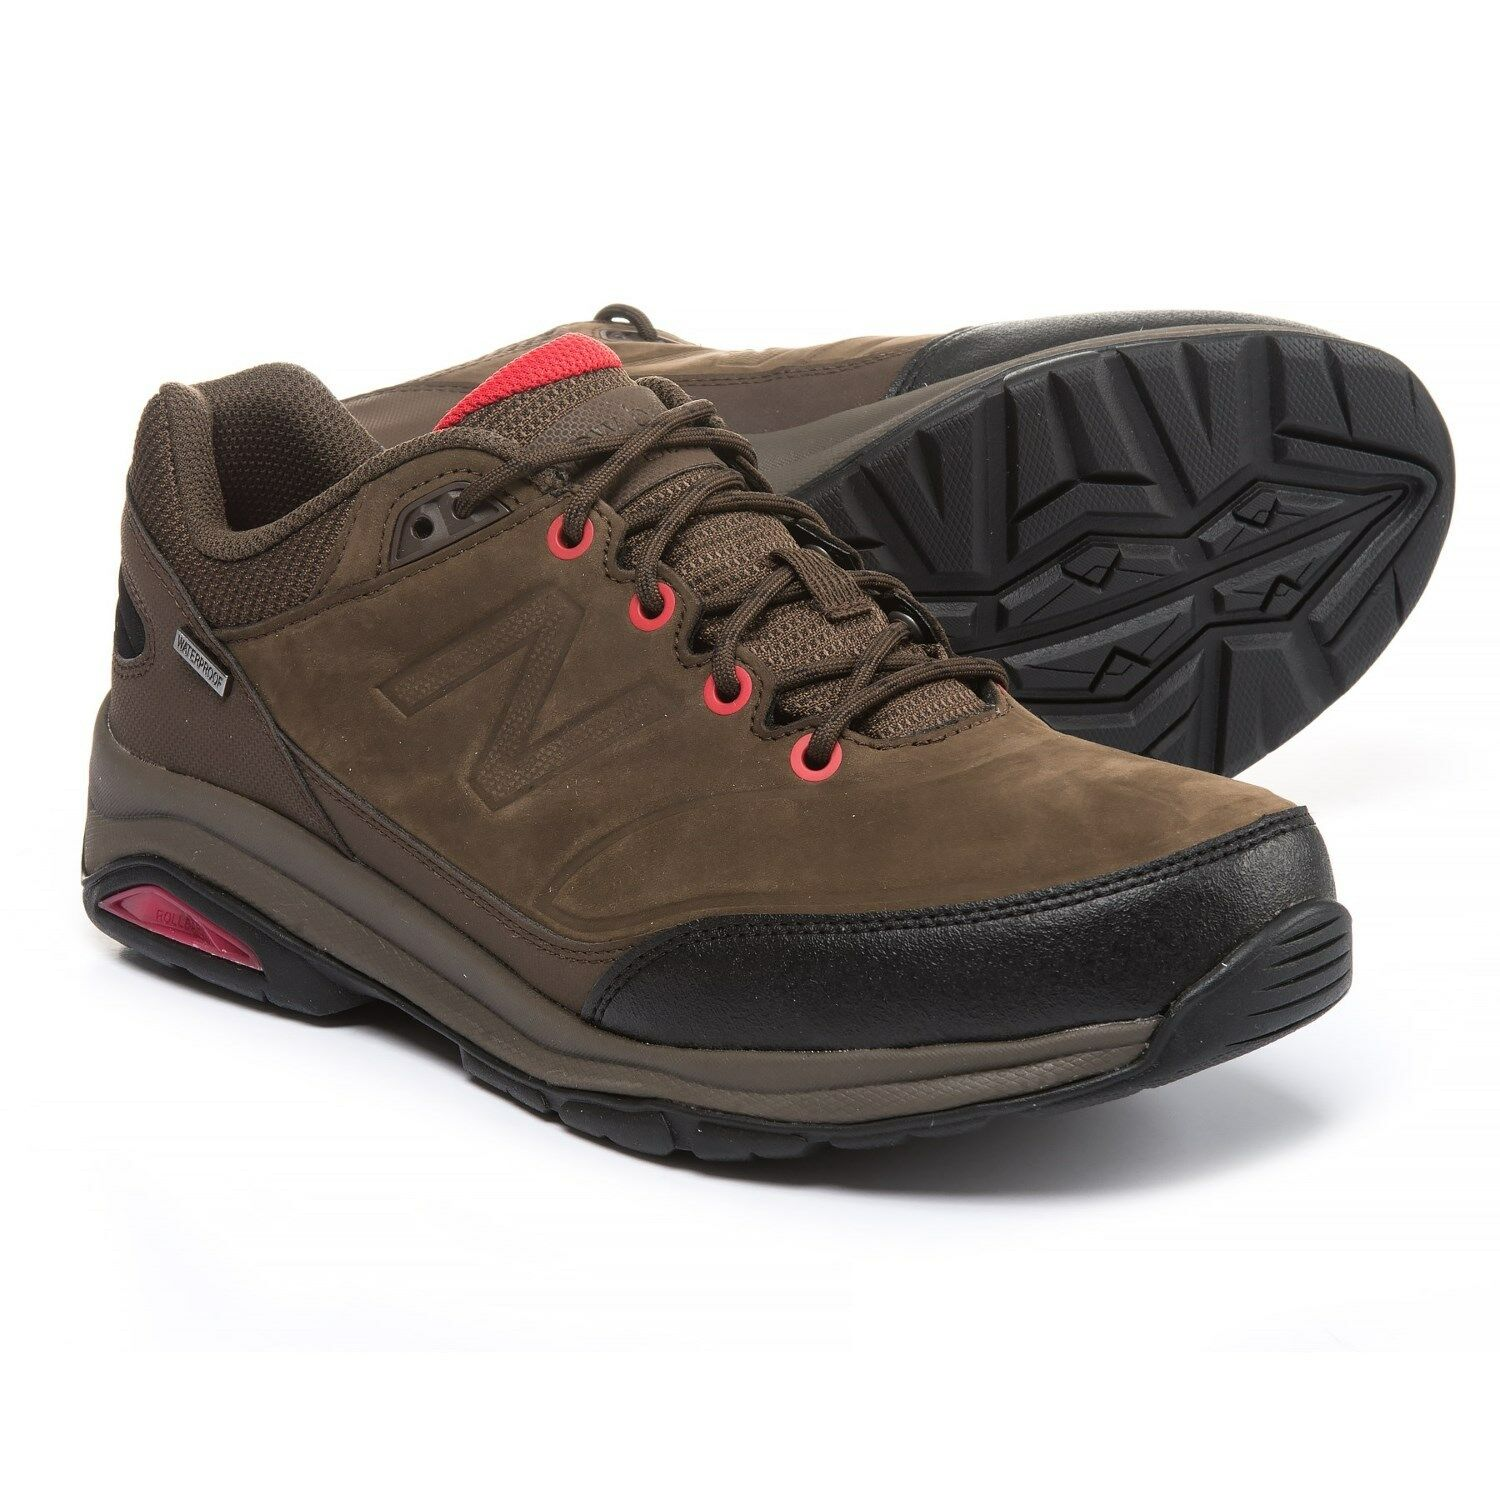 New Men`s New Balance 1300 Nubuck Waterproof Walking shoes MW1300BR MSRP 135